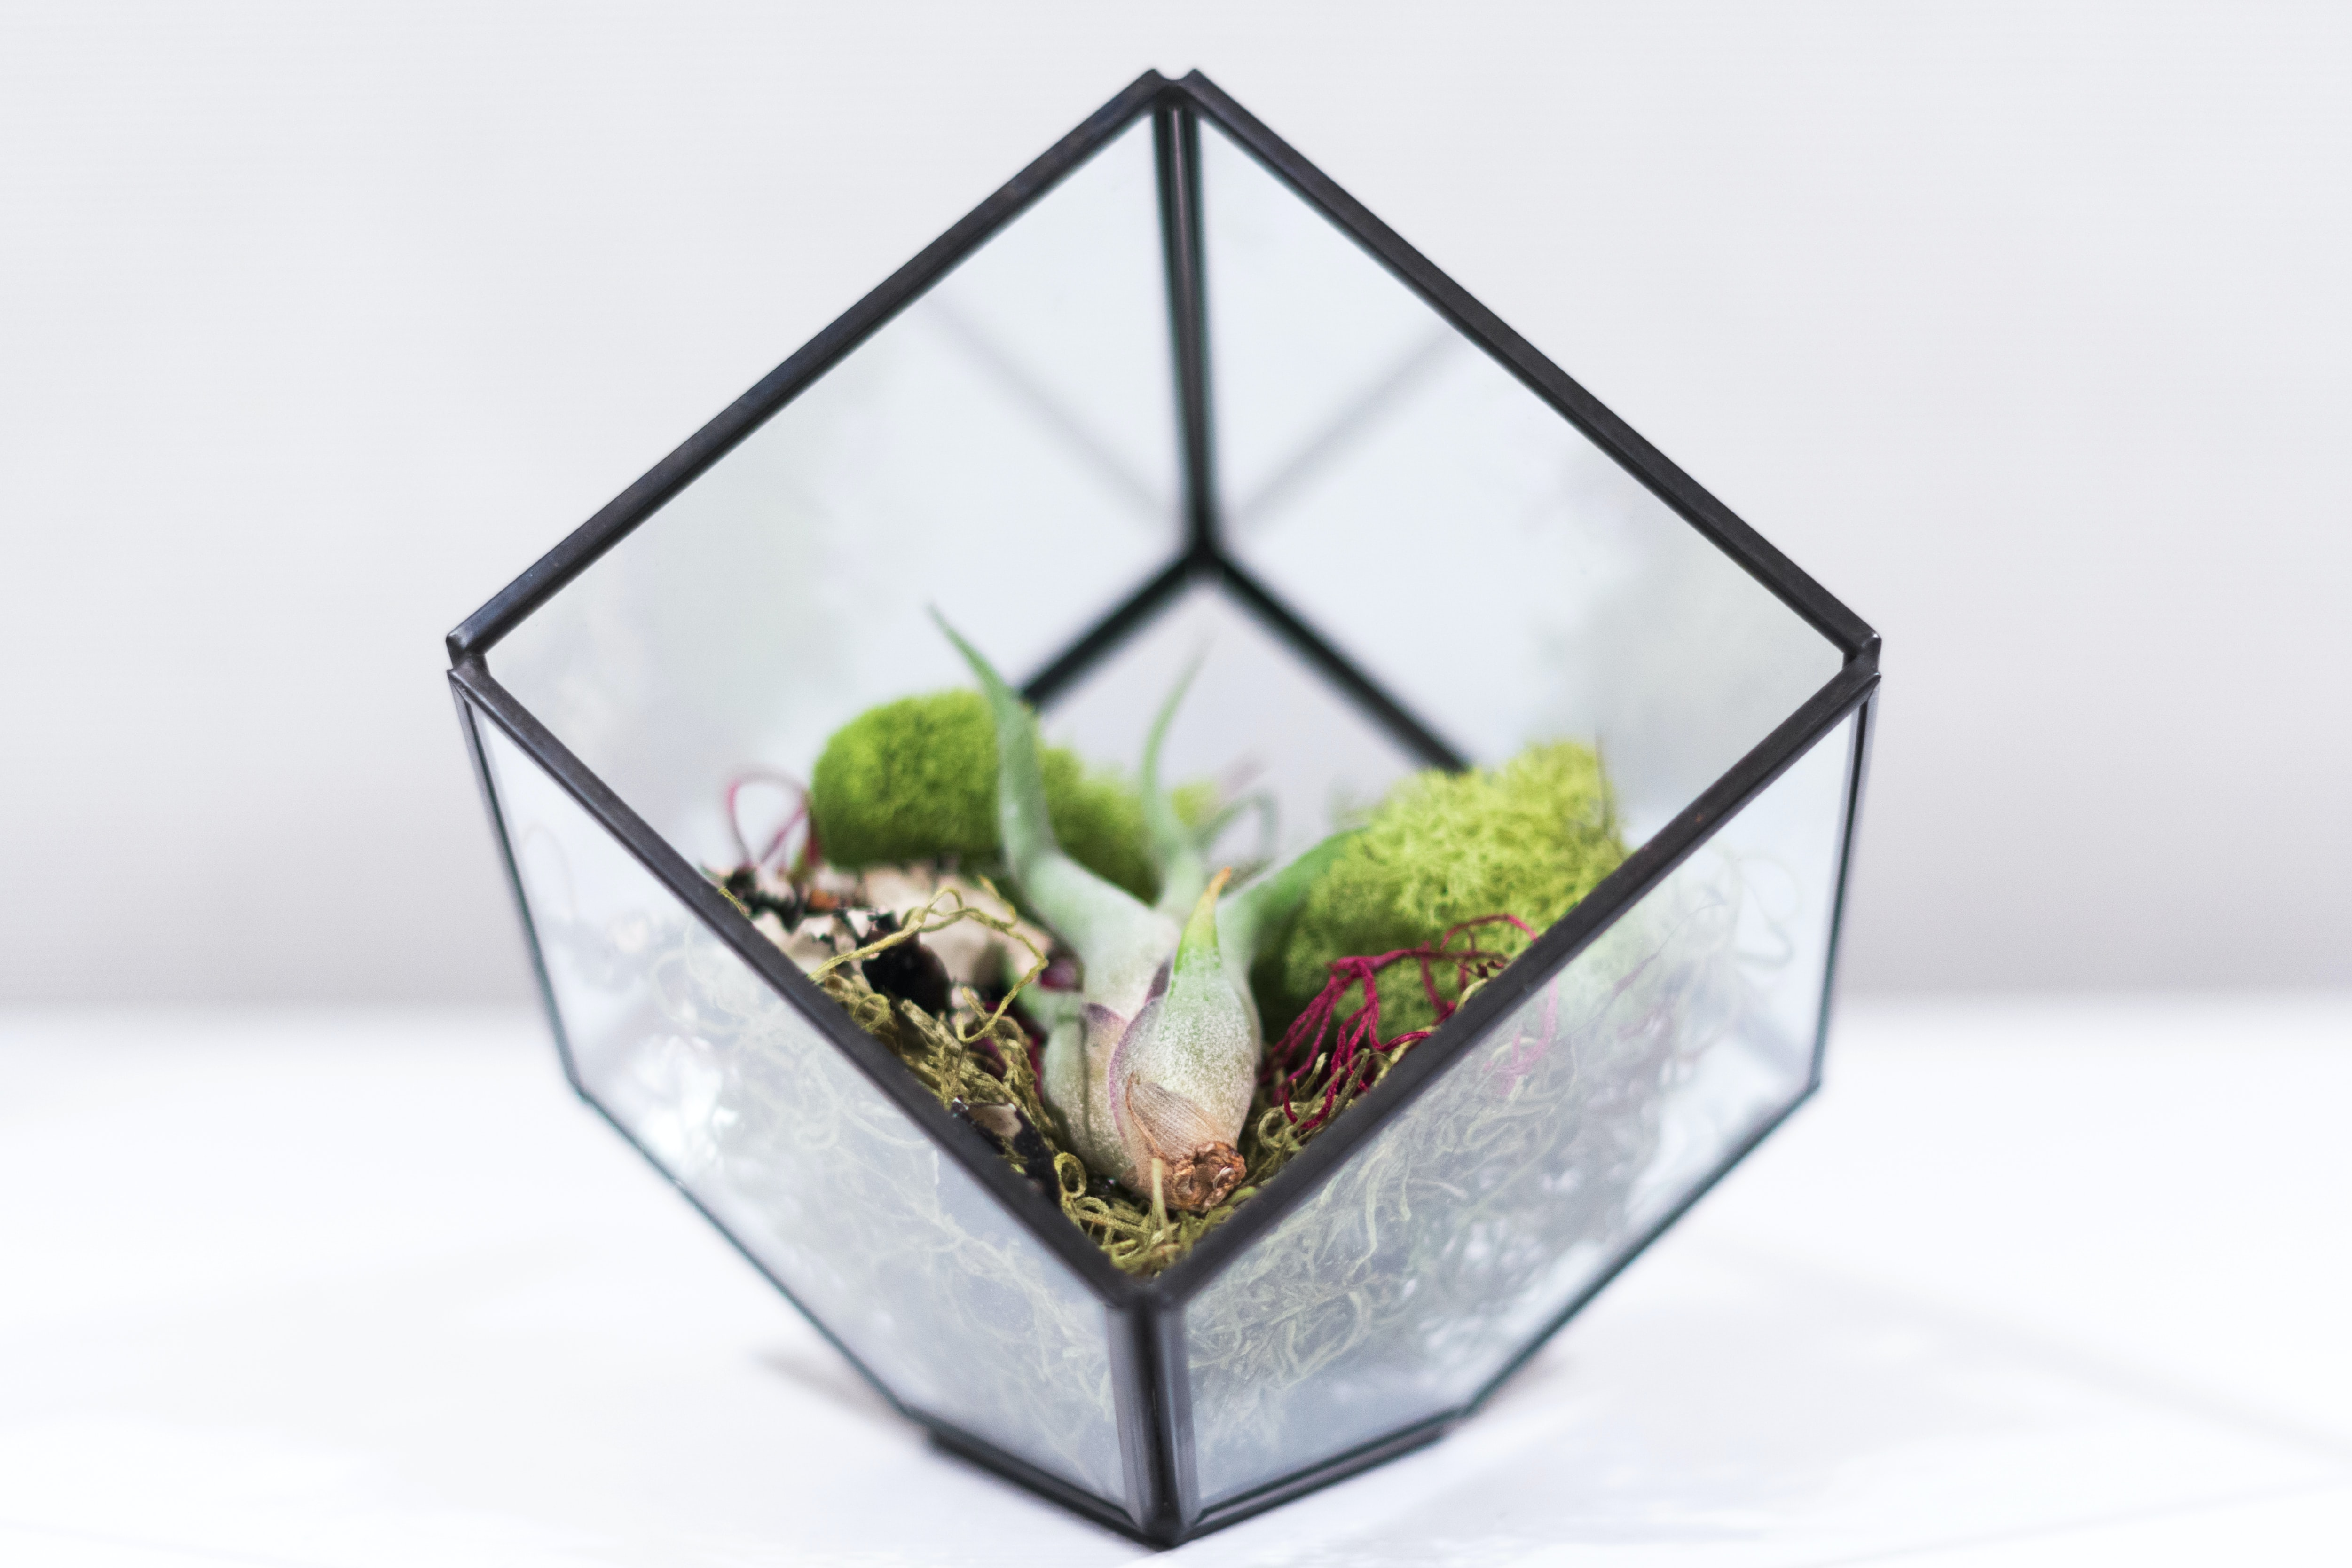 square clear glass terrarium on white surface